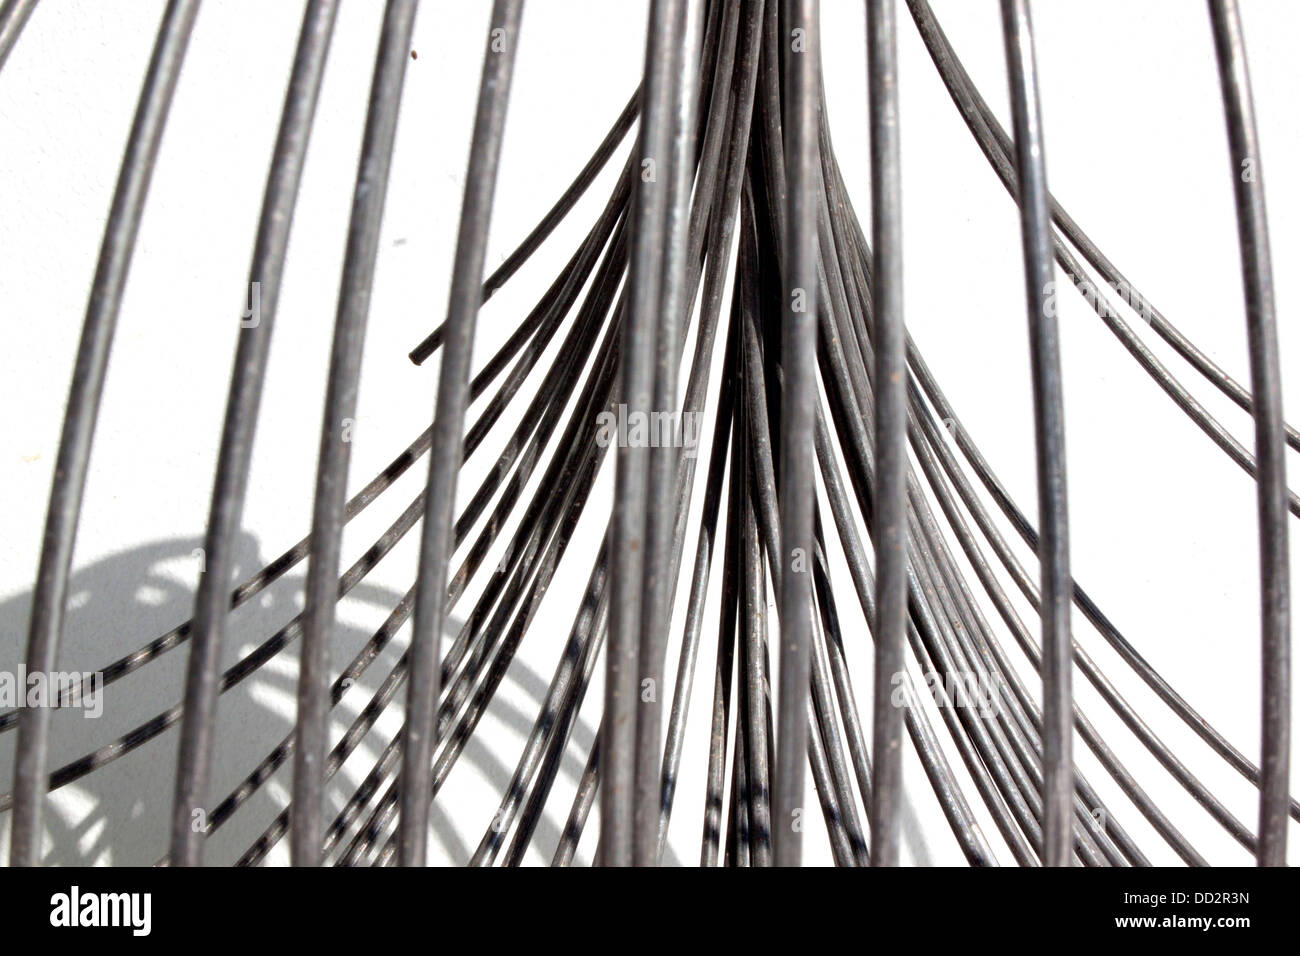 An abstract studio shot of a coil of unravelling thick metal wire ...